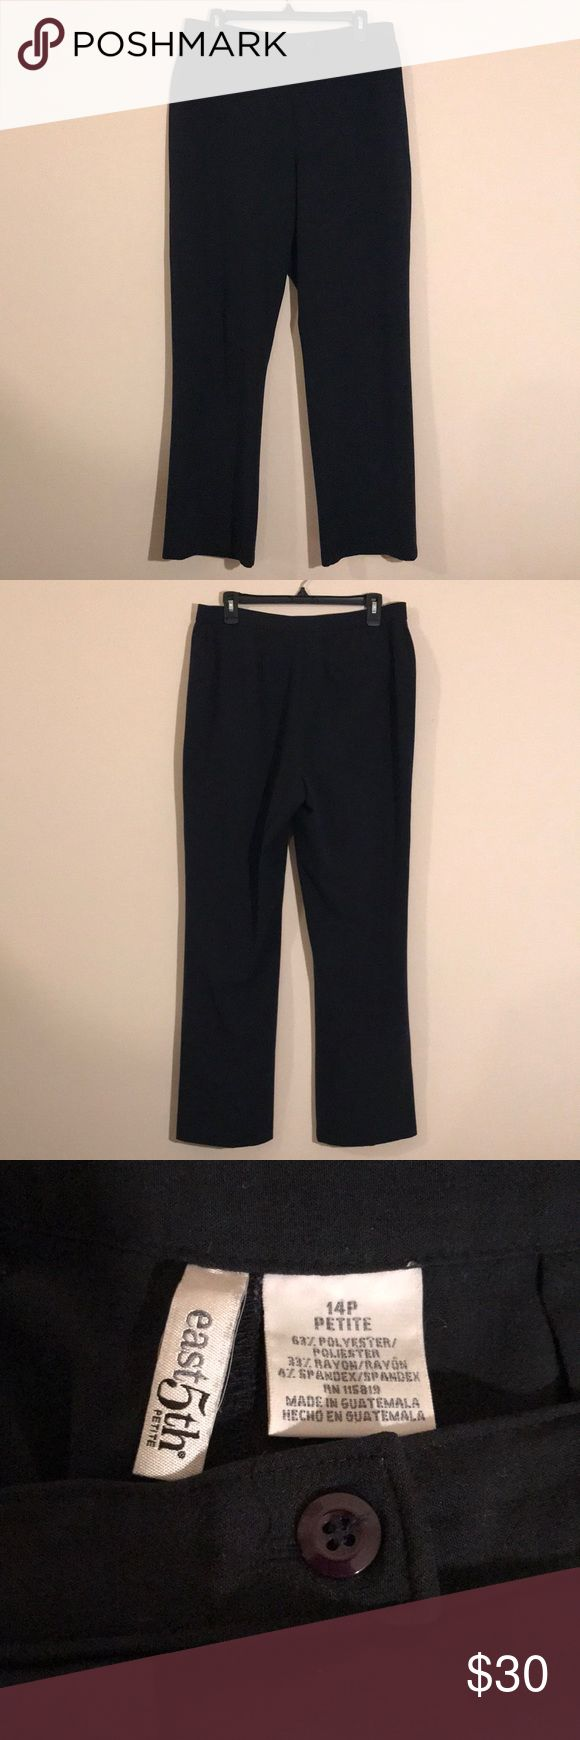 East 5th Dress Pants East 5th Petite dark blue dress pants - size 14P - button, metal clasp, and zipper - one fake back pocket - like new! Feel free to ask any questions! Sorry, no trades. East 5th Pants Trousers